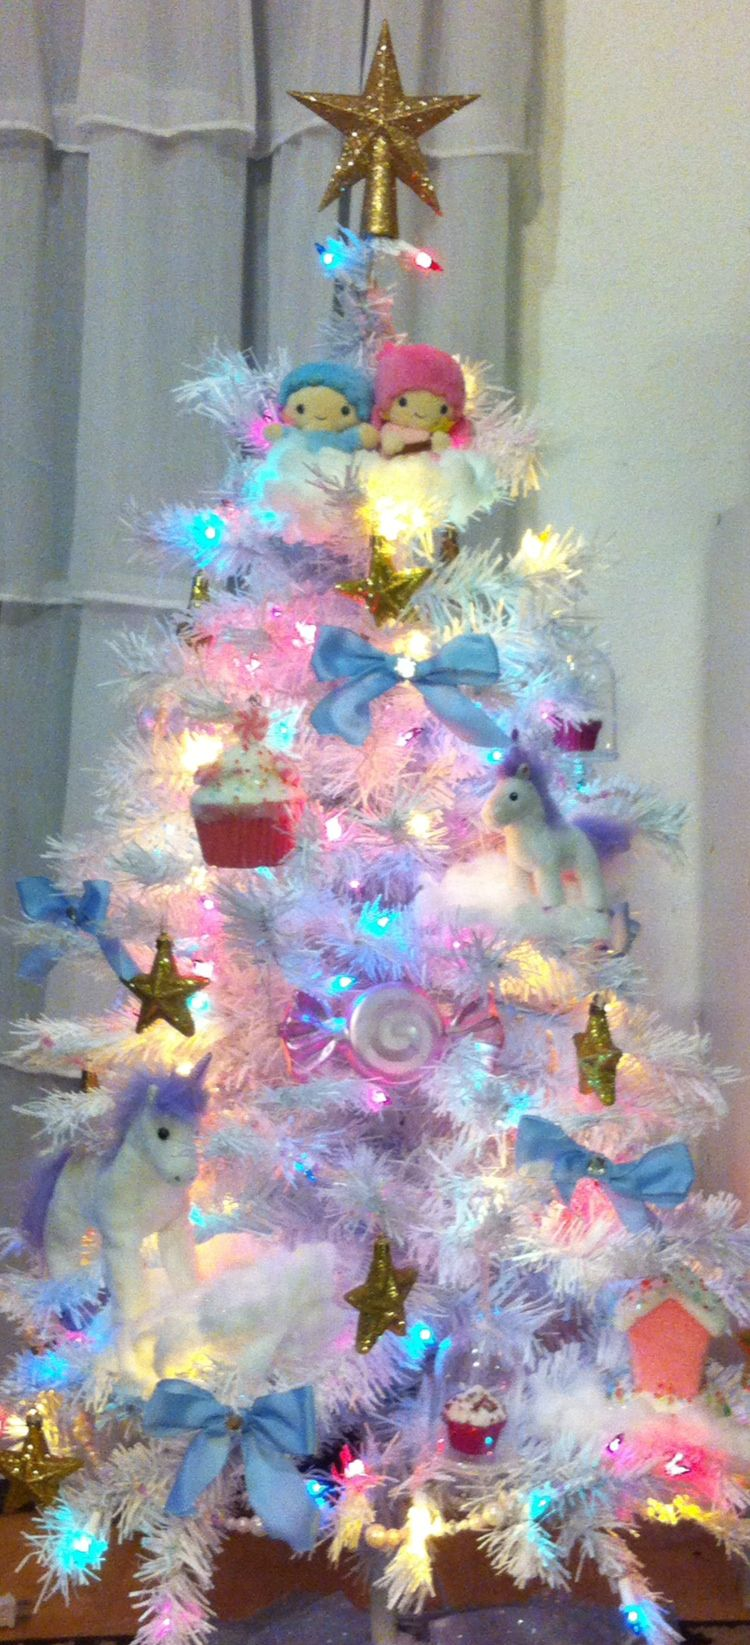 Christmas Tree Decorations Fluffy Unicorn Ornaments Fur Ball Pom Pom Horse Pendant New Year Gifts Decorations 2019 Little Twin Stars Christmas Tree Pastel Christmas Tree Unicorn